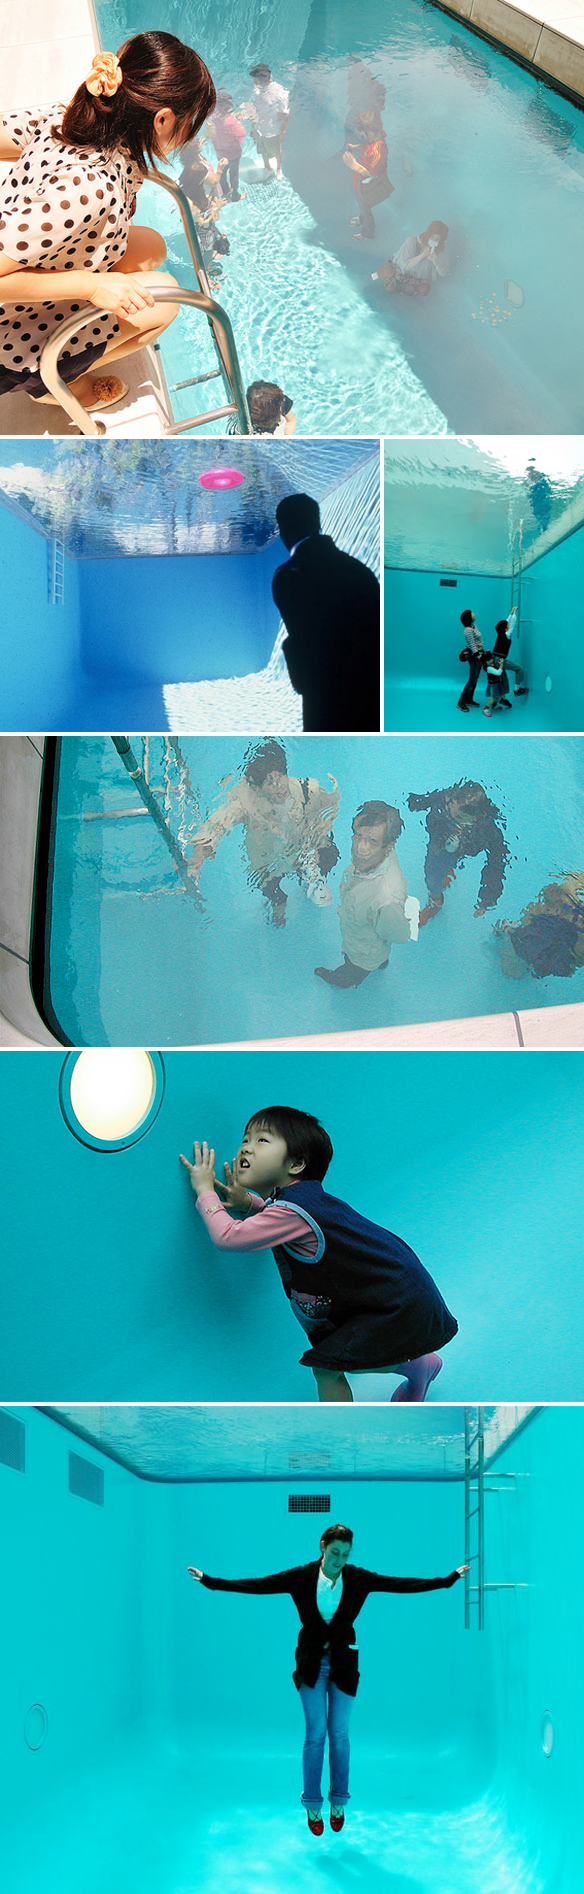 Swimming Pool Art : The jealous curator curated contemporary art